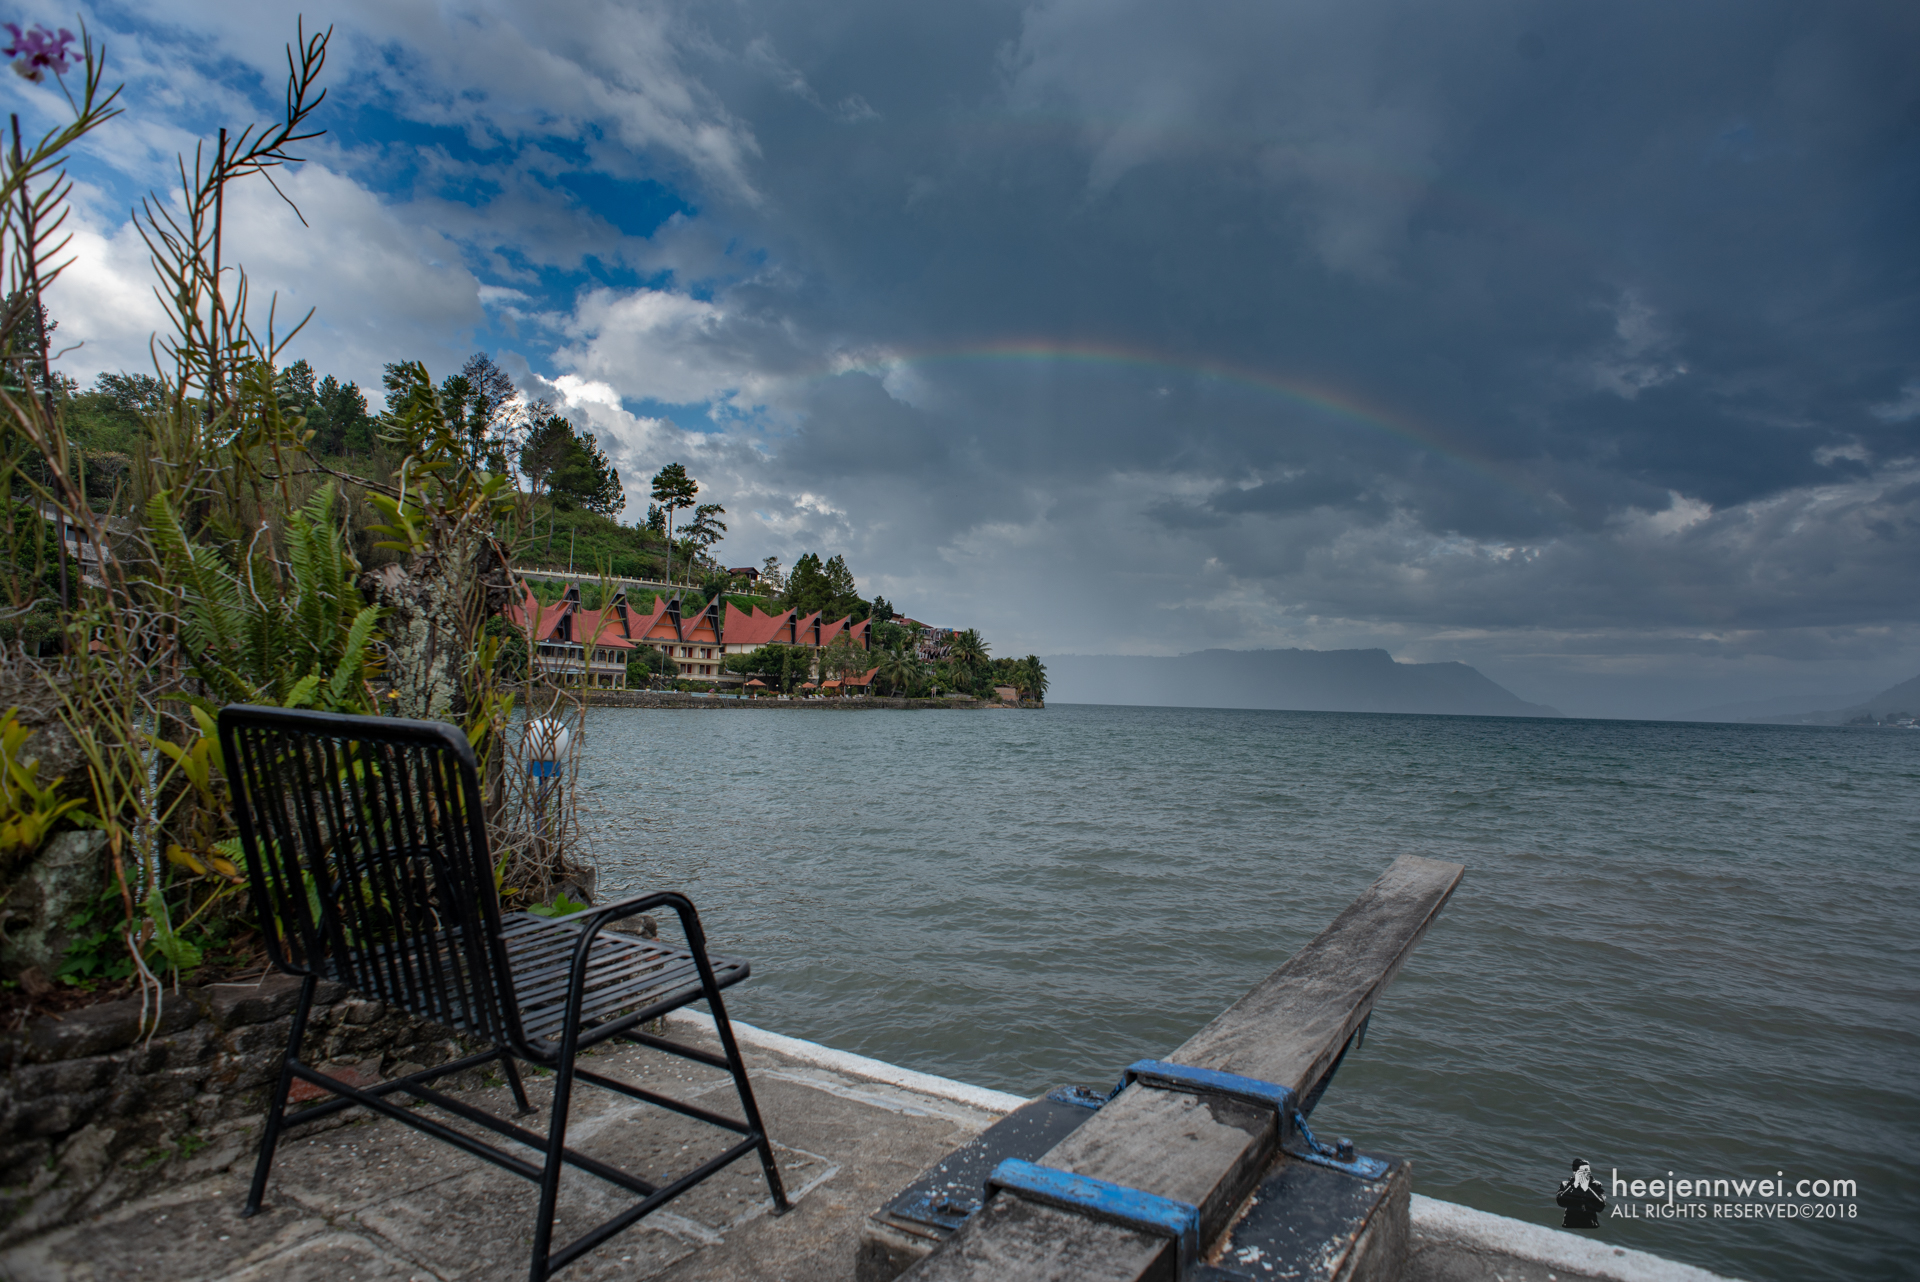 An invite into the Lake Toba, dock from Horas Family Home.